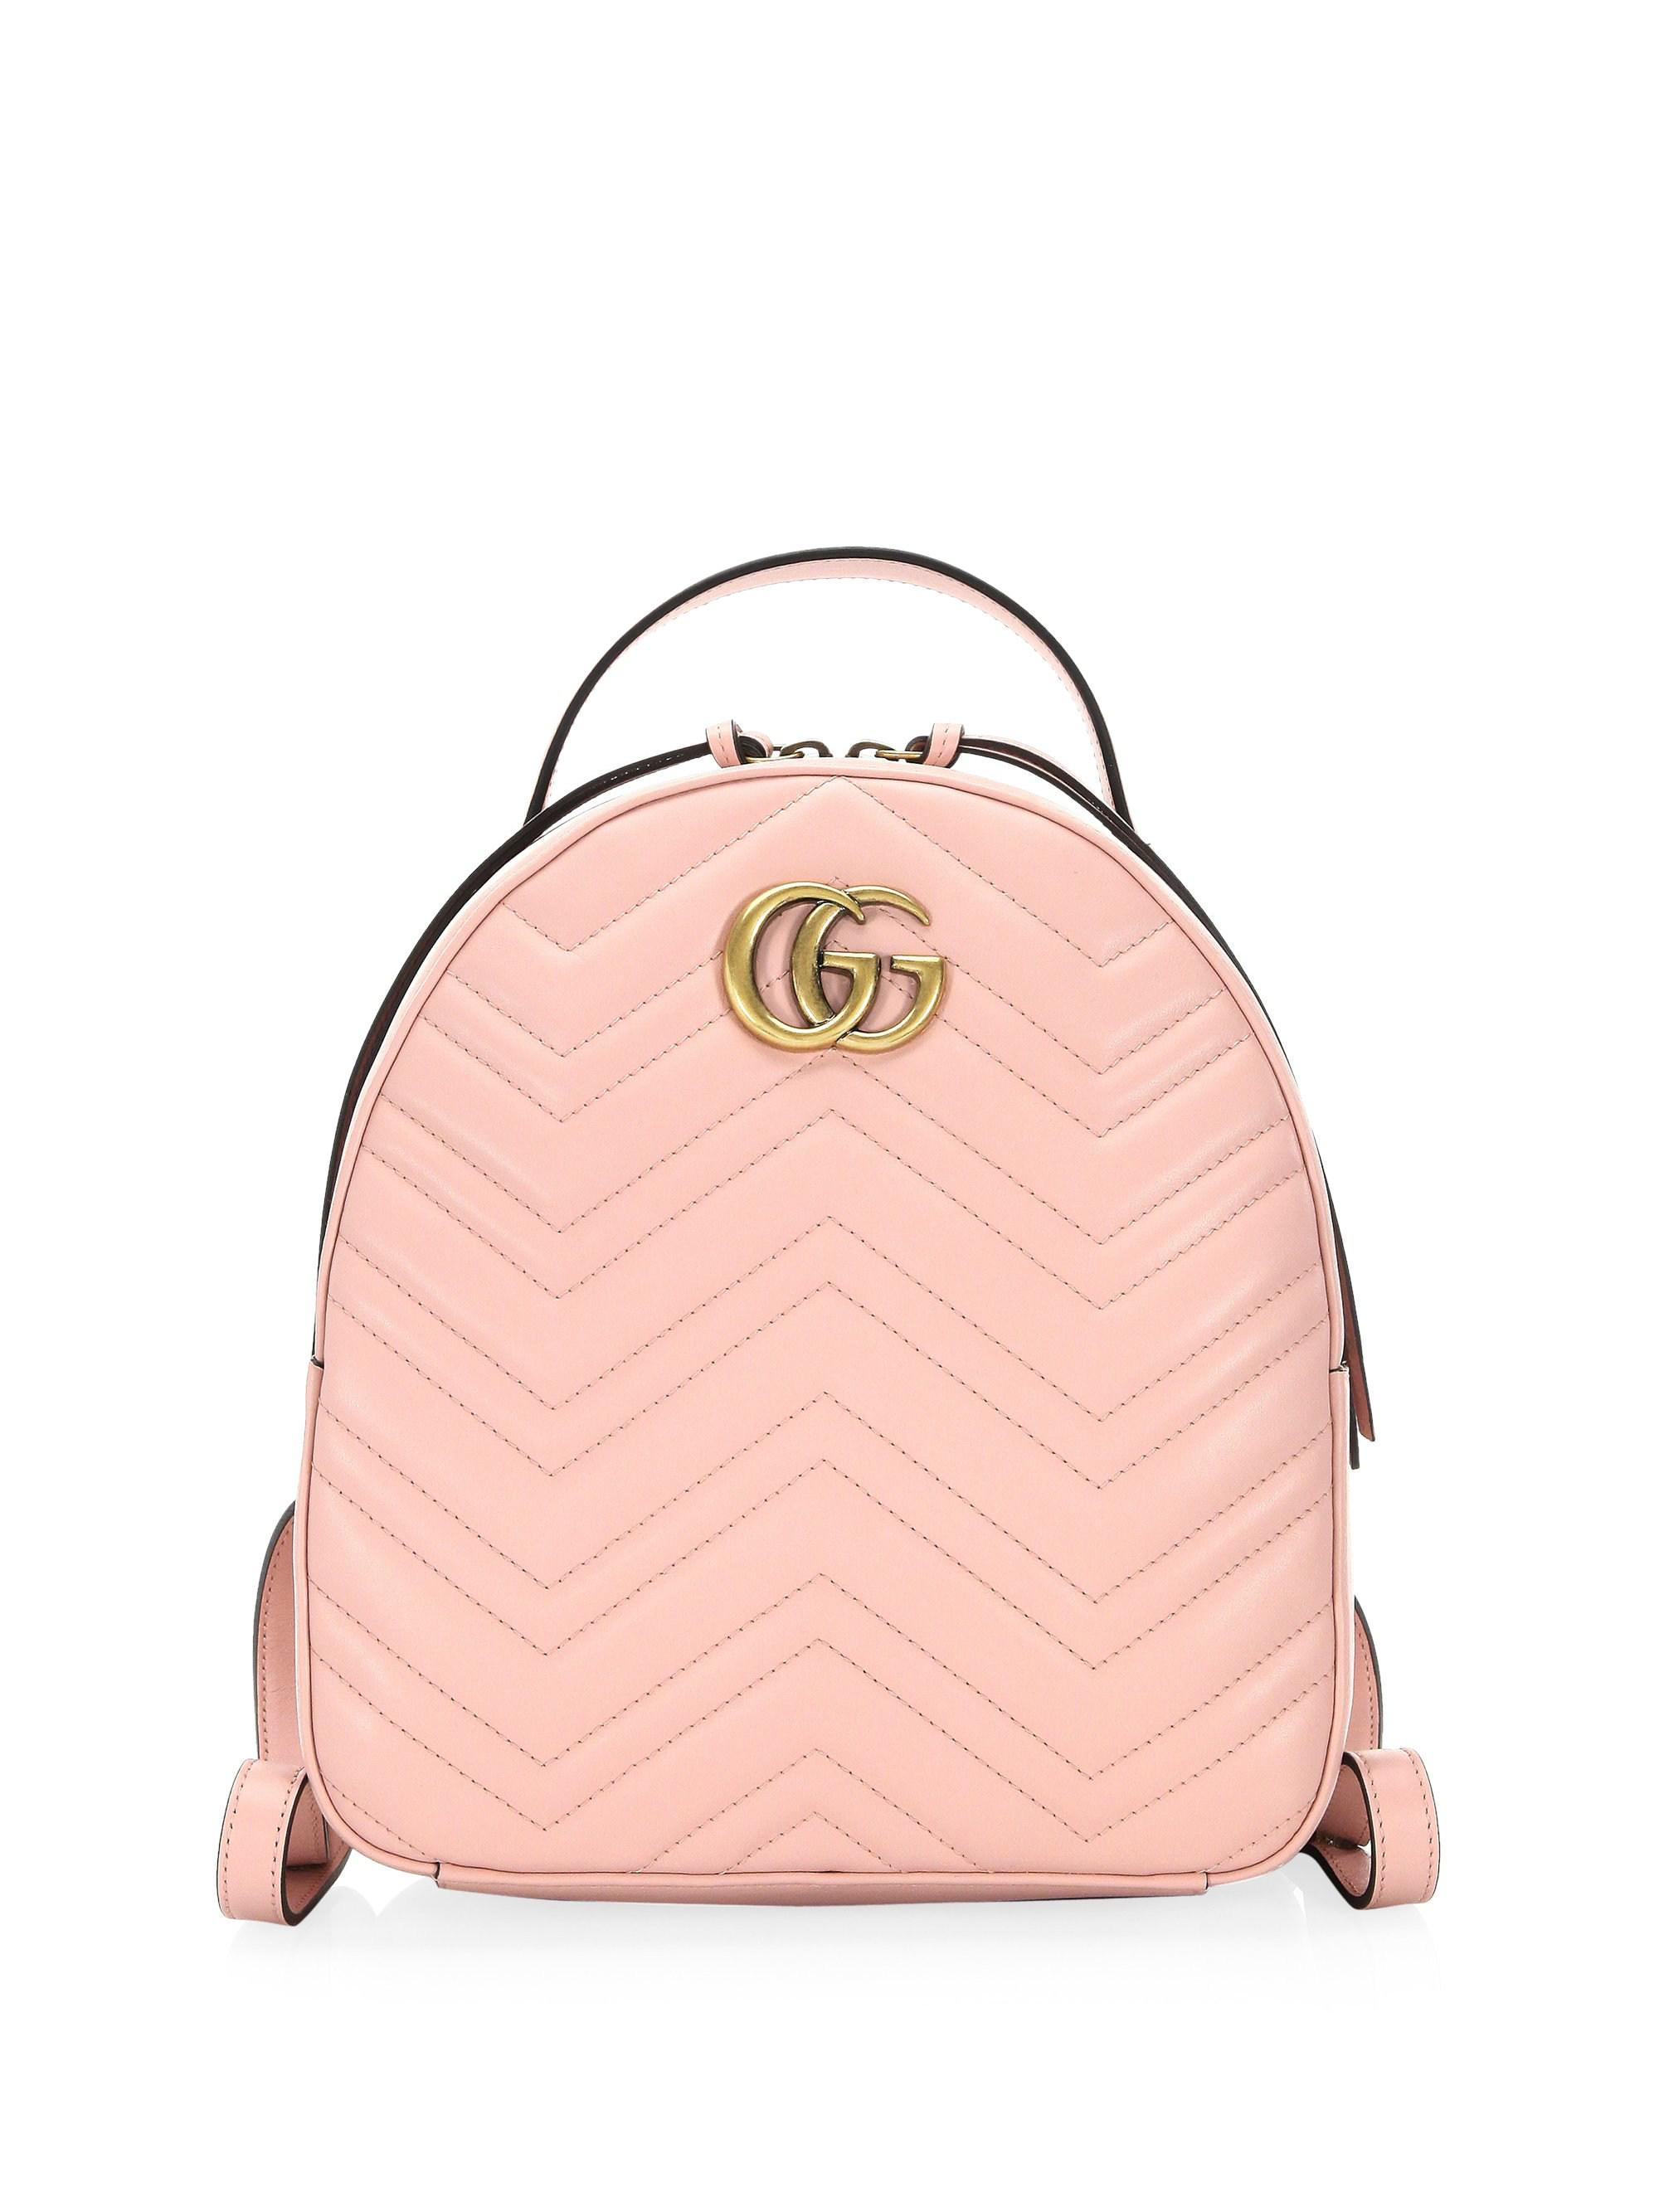 Gucci Women s GG Marmont Chevron Quilted Leather Mini Backpack ... aa0955616a